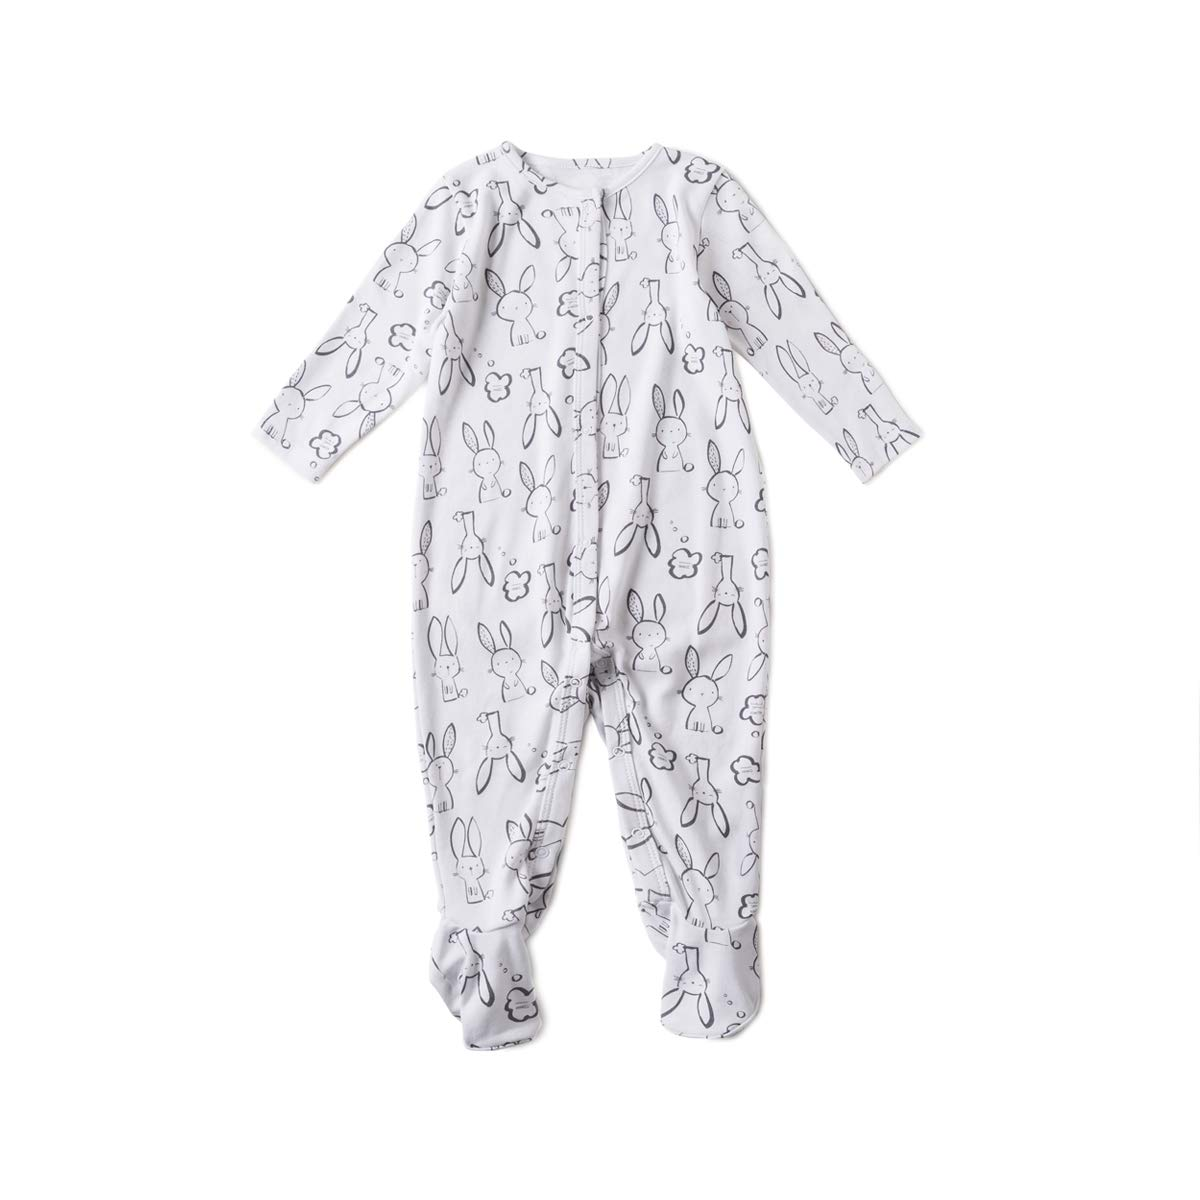 OnlyAngel Infant Baby Girls Footies Onesies Jumpsuit Button-up Romper 3-18Months